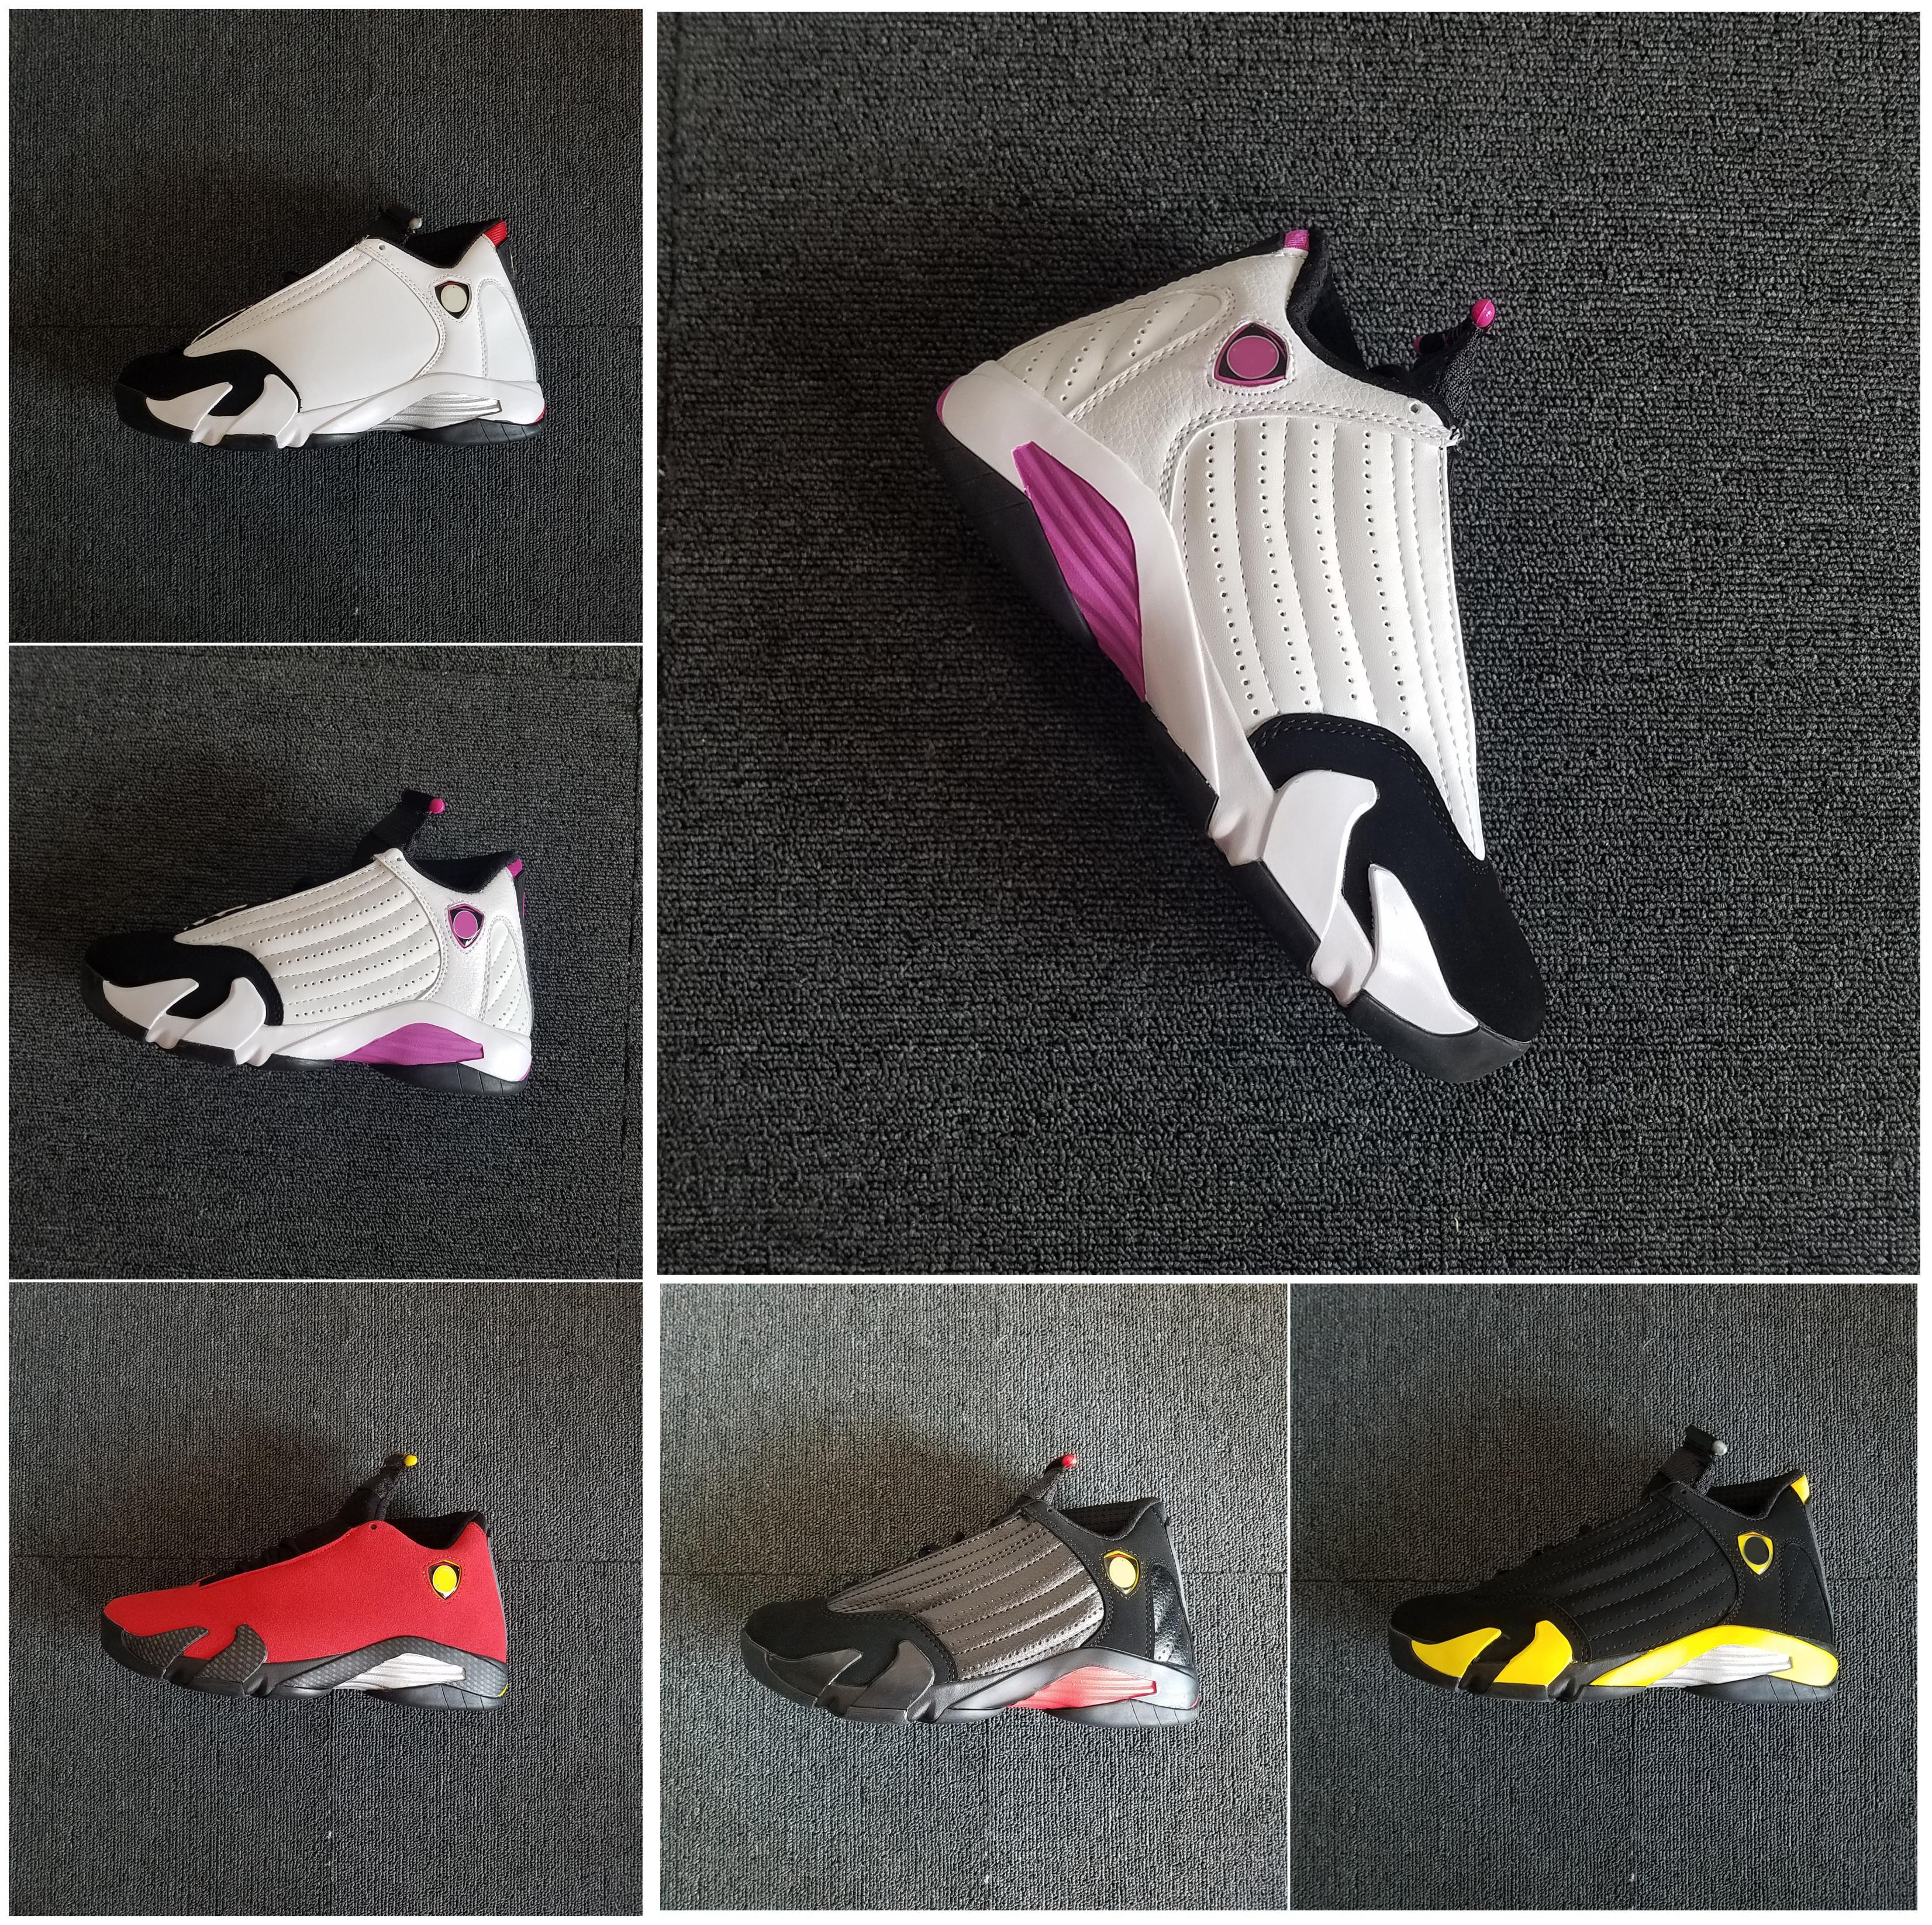 Belle Femmes Hommes 14s Basketball Chaussures Designer Cheap Last Shot moments marquants Blanc Candy Cane Noir 14 Chaussures de sport Chaussures de sport